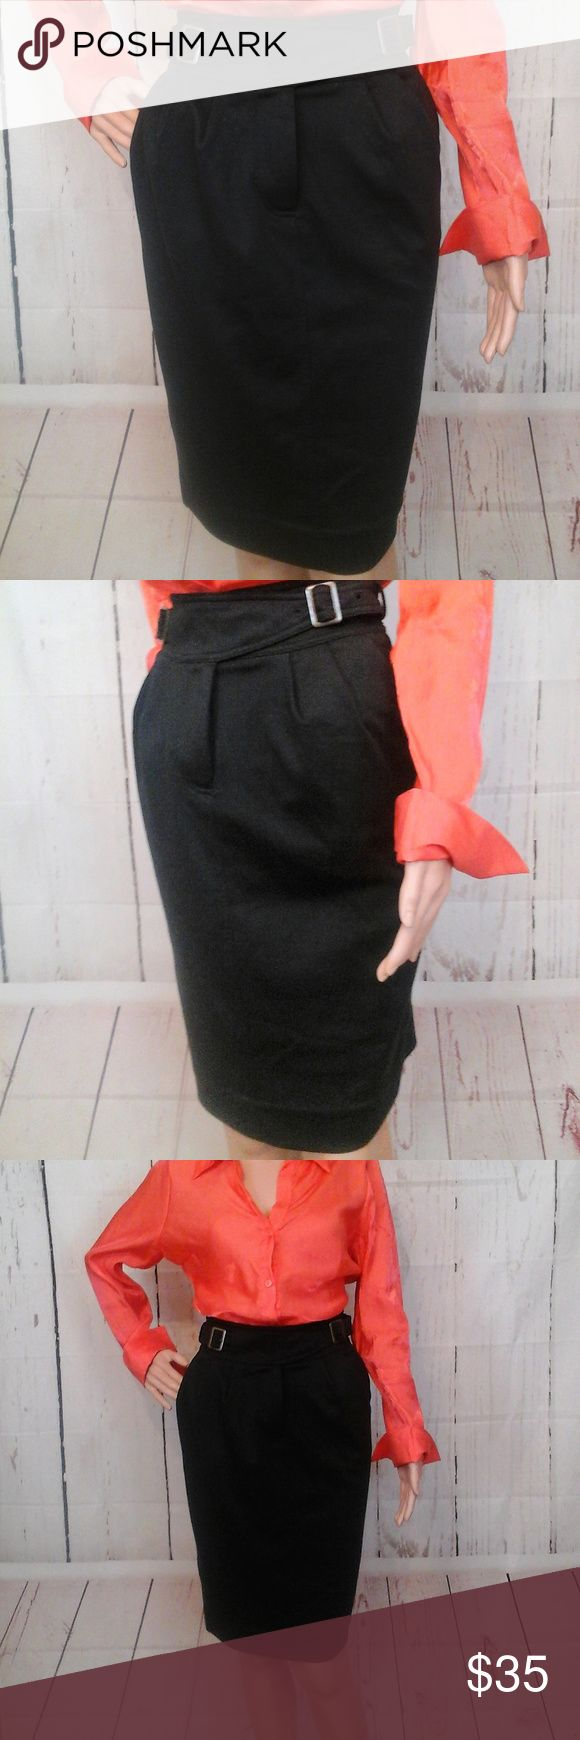 """Anthropologie Maeve Blk Cinched Ponte Pencil Skirt New with Tags Size 4  Waist= 14"""" (hip to hip - across the front) Length = 24"""" (waist to hem) Material: Polyester (74%) Rayon (23%) Spandex (3%) Features:  Zip front with a cinched waist belt  No trades or modeling of clothing, jewelry, shoes or accessories.  If additional measurements are required to ensure the perfect fit for you, I will gladly provide them. All items are from a smoke-free/pet-free home. Anthropologie Maeve Skirts"""